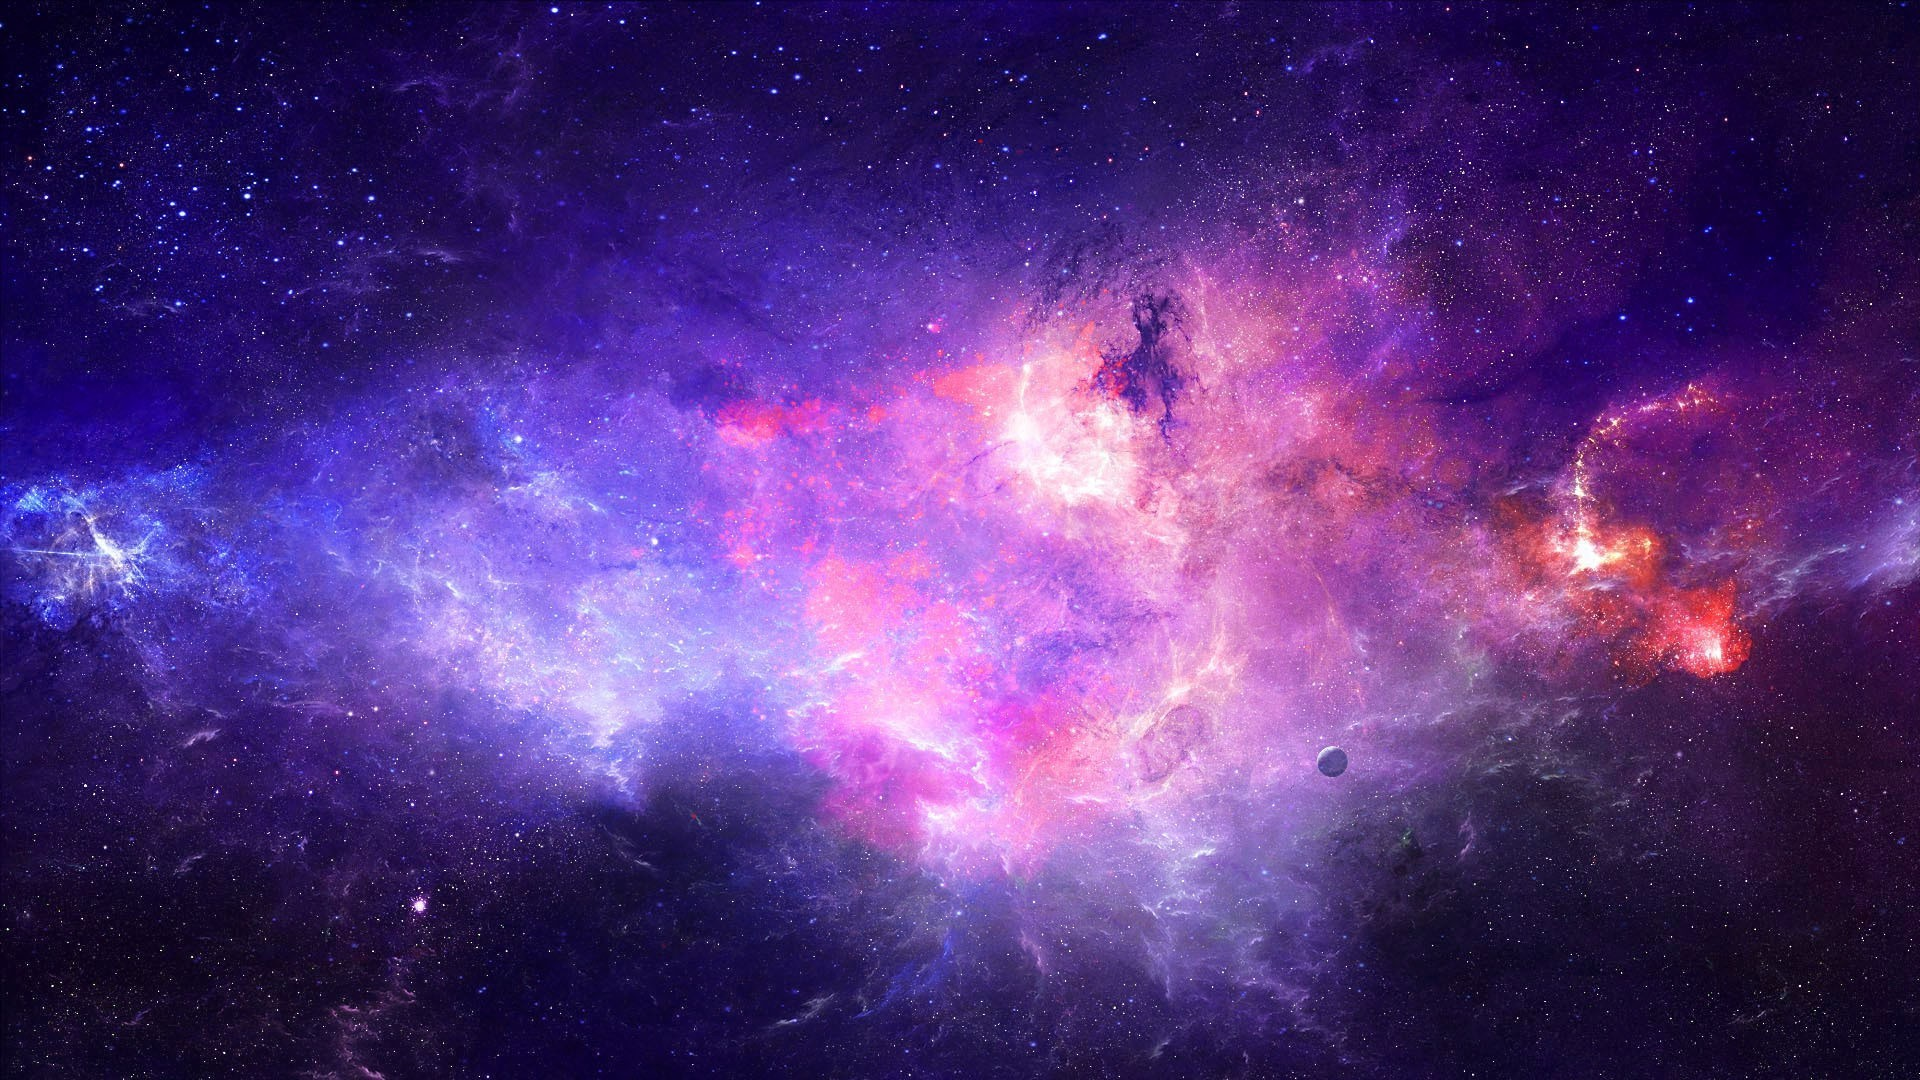 Galaxy Wallpaper 1080p (79+ images)